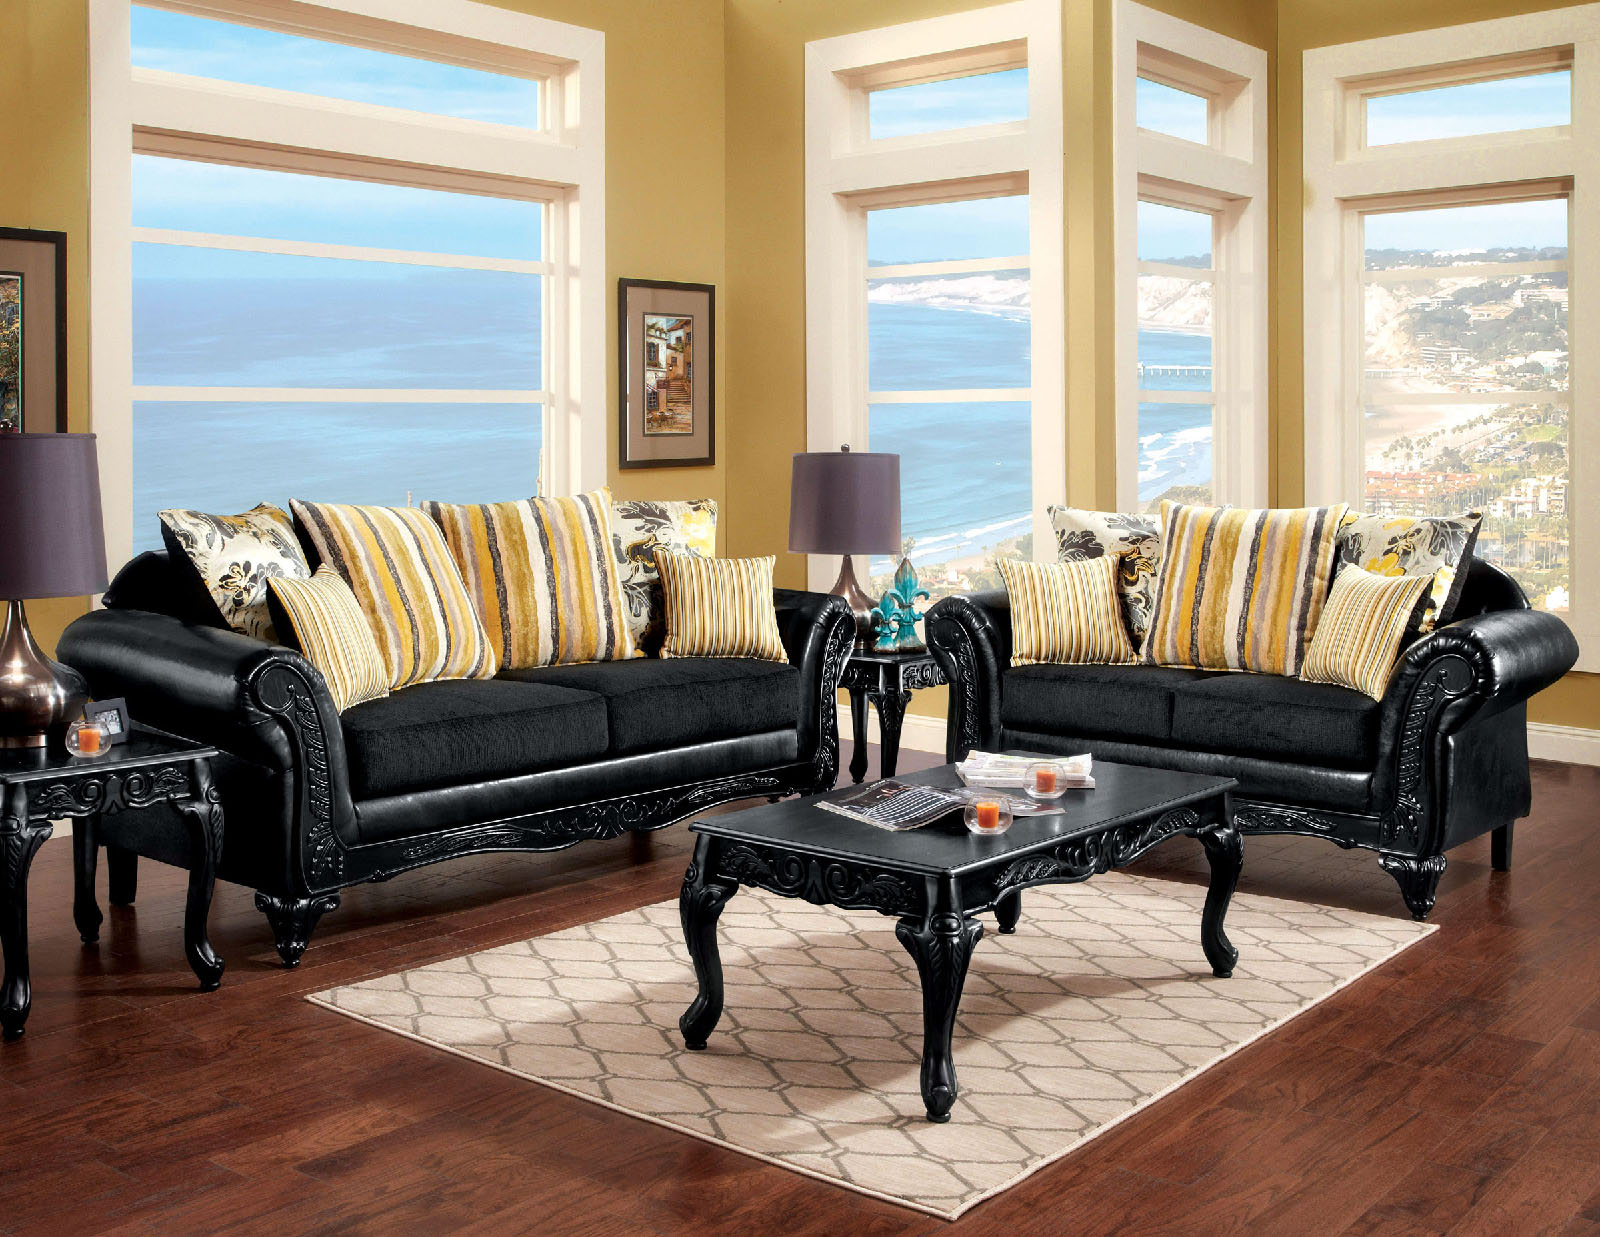 Marvelous Foa Furniture Of America Thelon 2Pc Sofa Loveseat Set Gamerscity Chair Design For Home Gamerscityorg